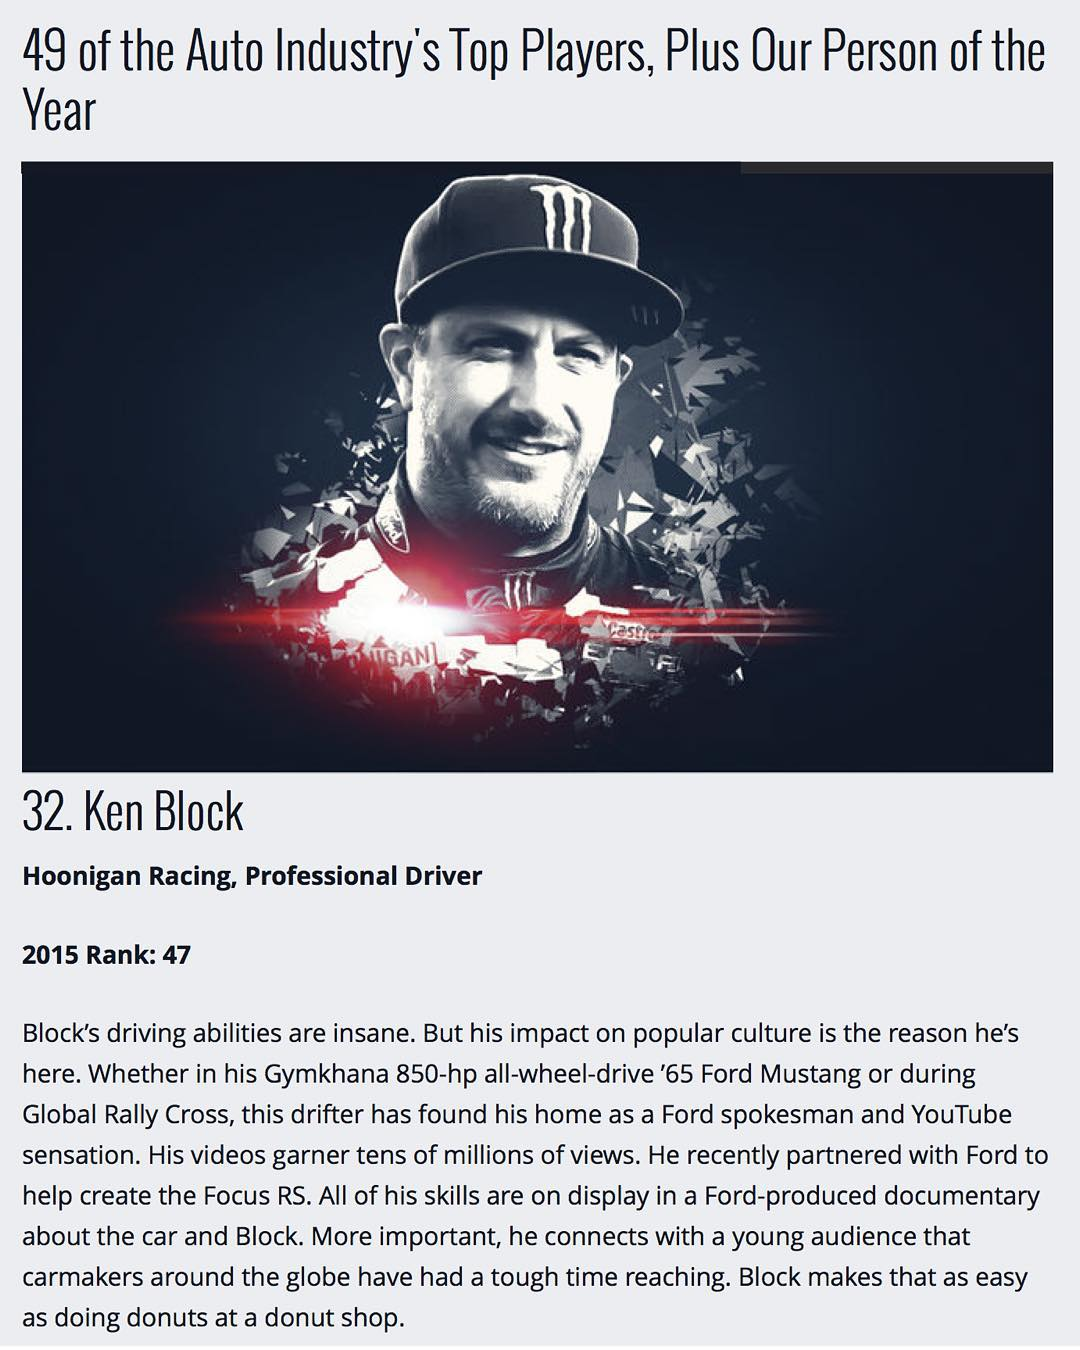 I've made the @MotorTrend Power List for the second year in a row, AND jumped up 15 spots from last year. Damn, that's an honor! Thanks for the kind words, MT. It's also pretty awesome to be the only racecar driver on that list! Check out the full list...